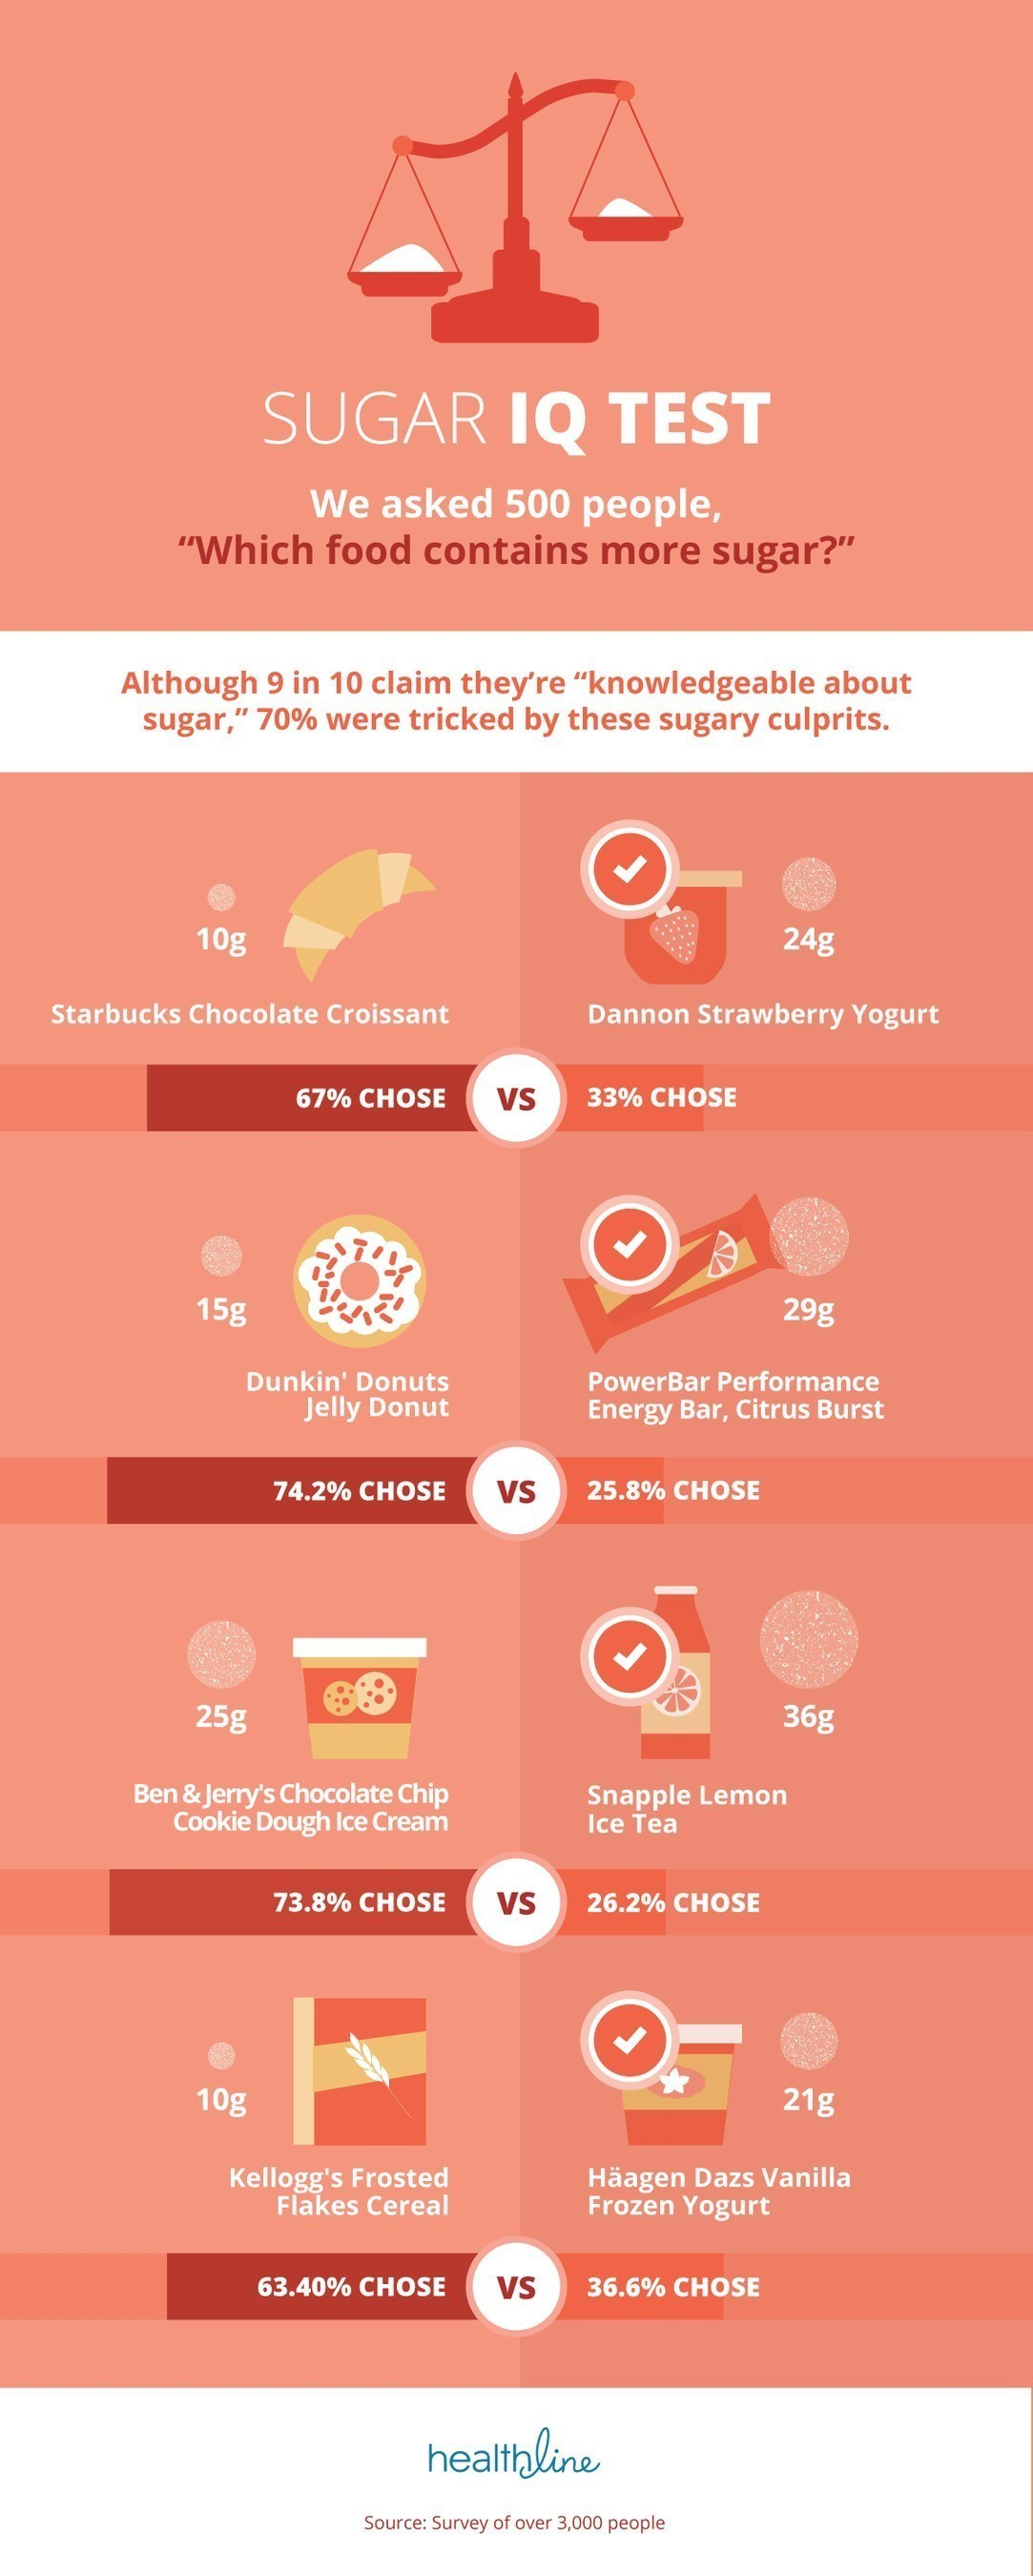 Our survey found that while at least one-third check sugar in foods typically associated with high-sugar content, such as cookies or frozen desserts, respondents are less likely to check hidden sugars in dressings, sauces, or condiments. The survey showed that 2 in 3 guess wrong on which popular food items contain more sugar.